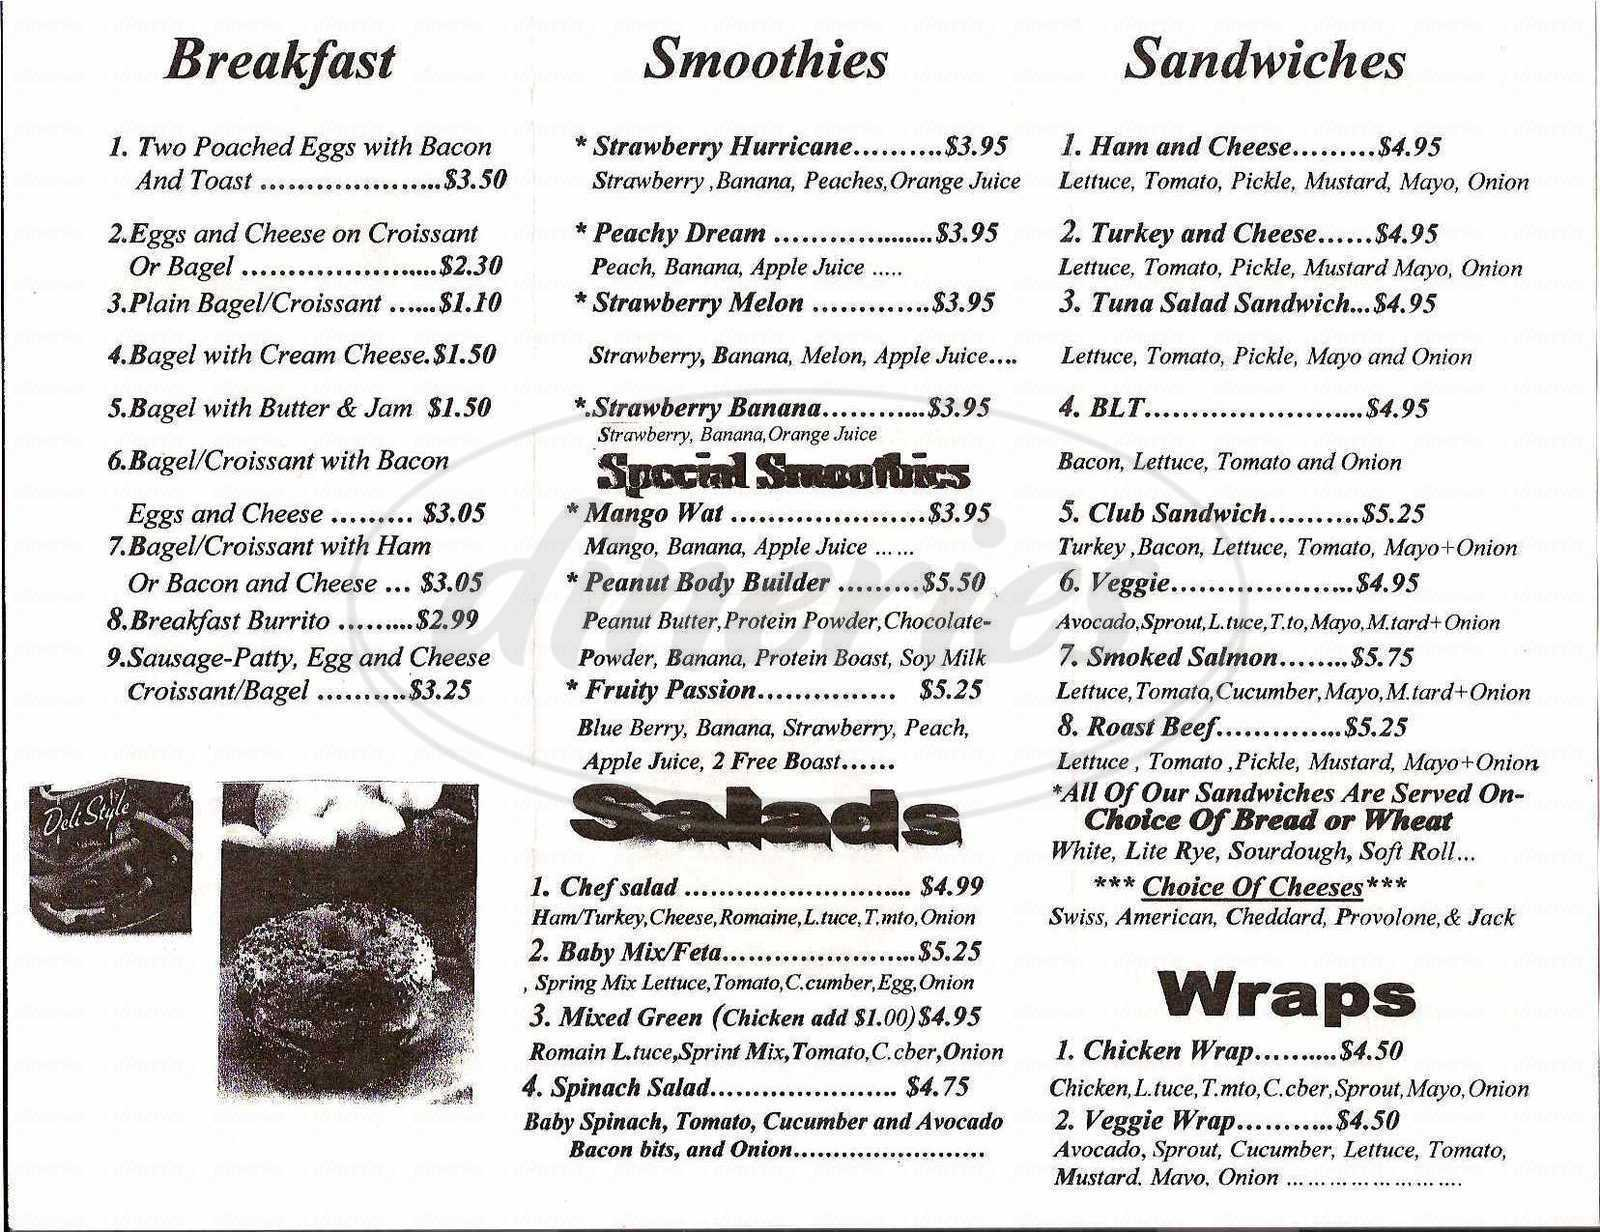 menu for Merritt Station Café